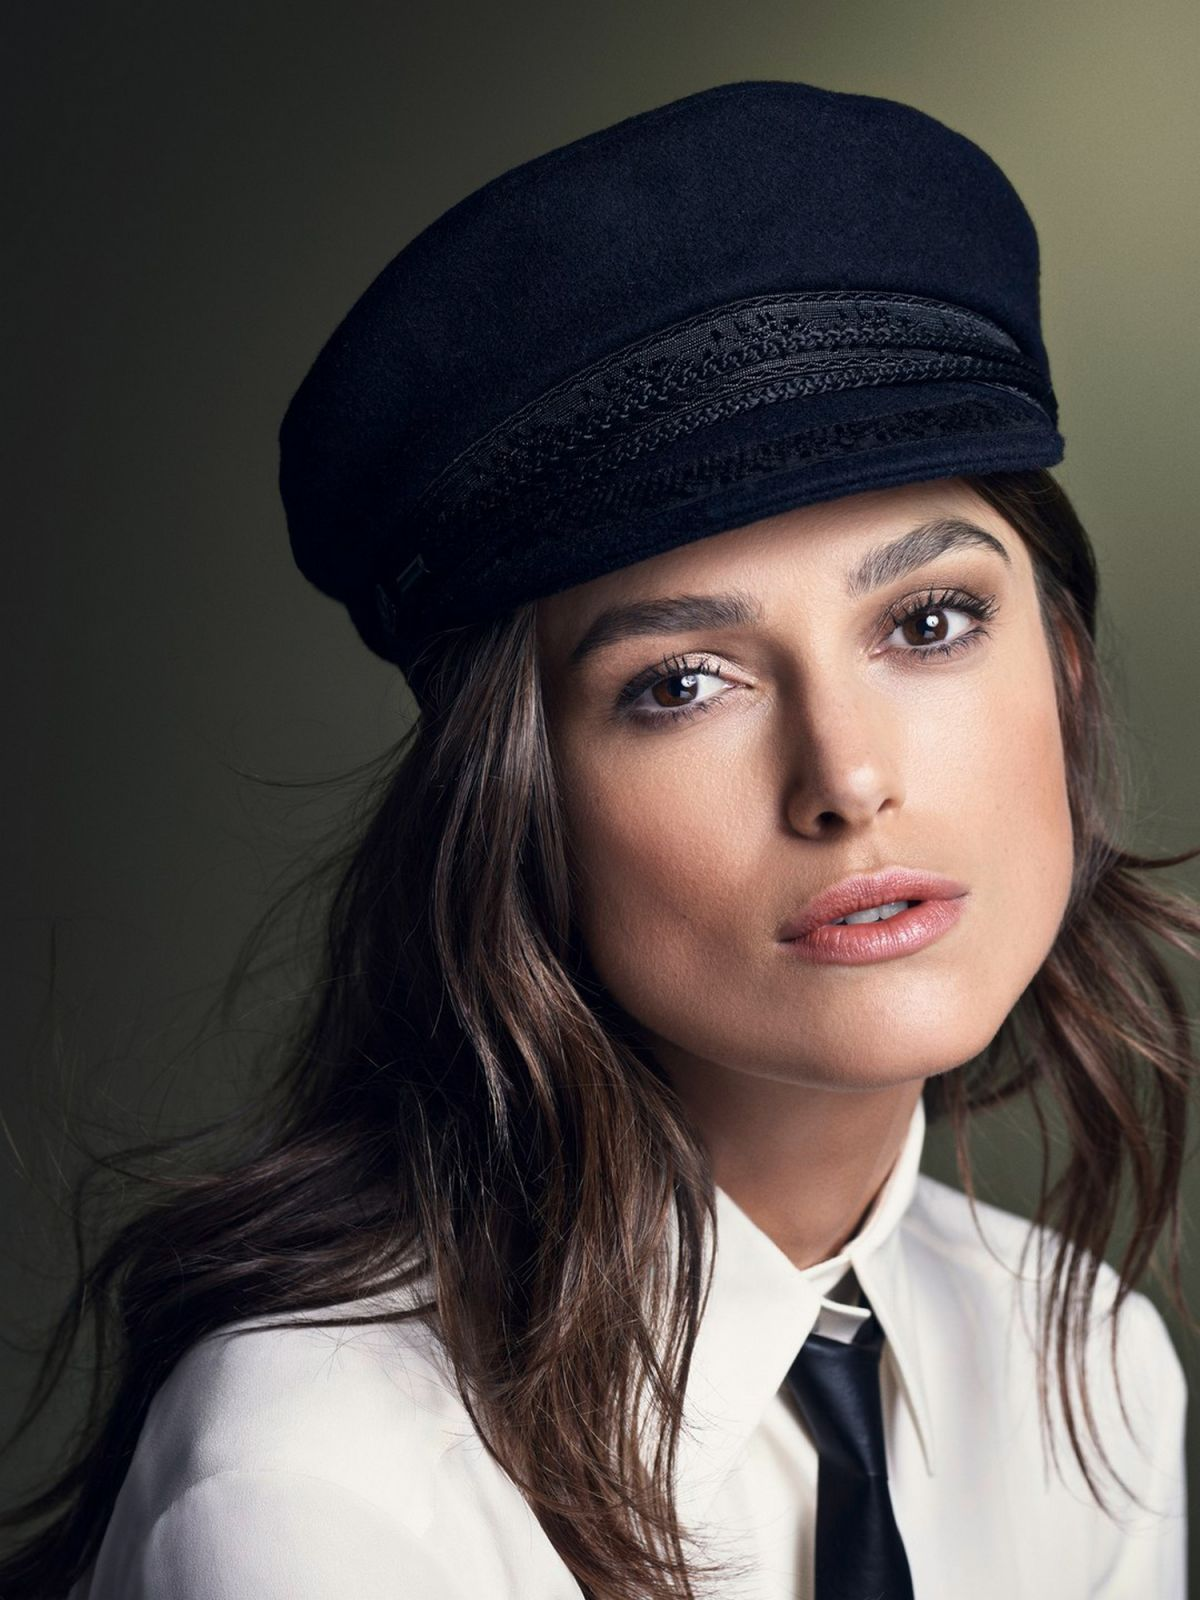 Keira Knightley At Karen Collins Photoshoot For Glamour